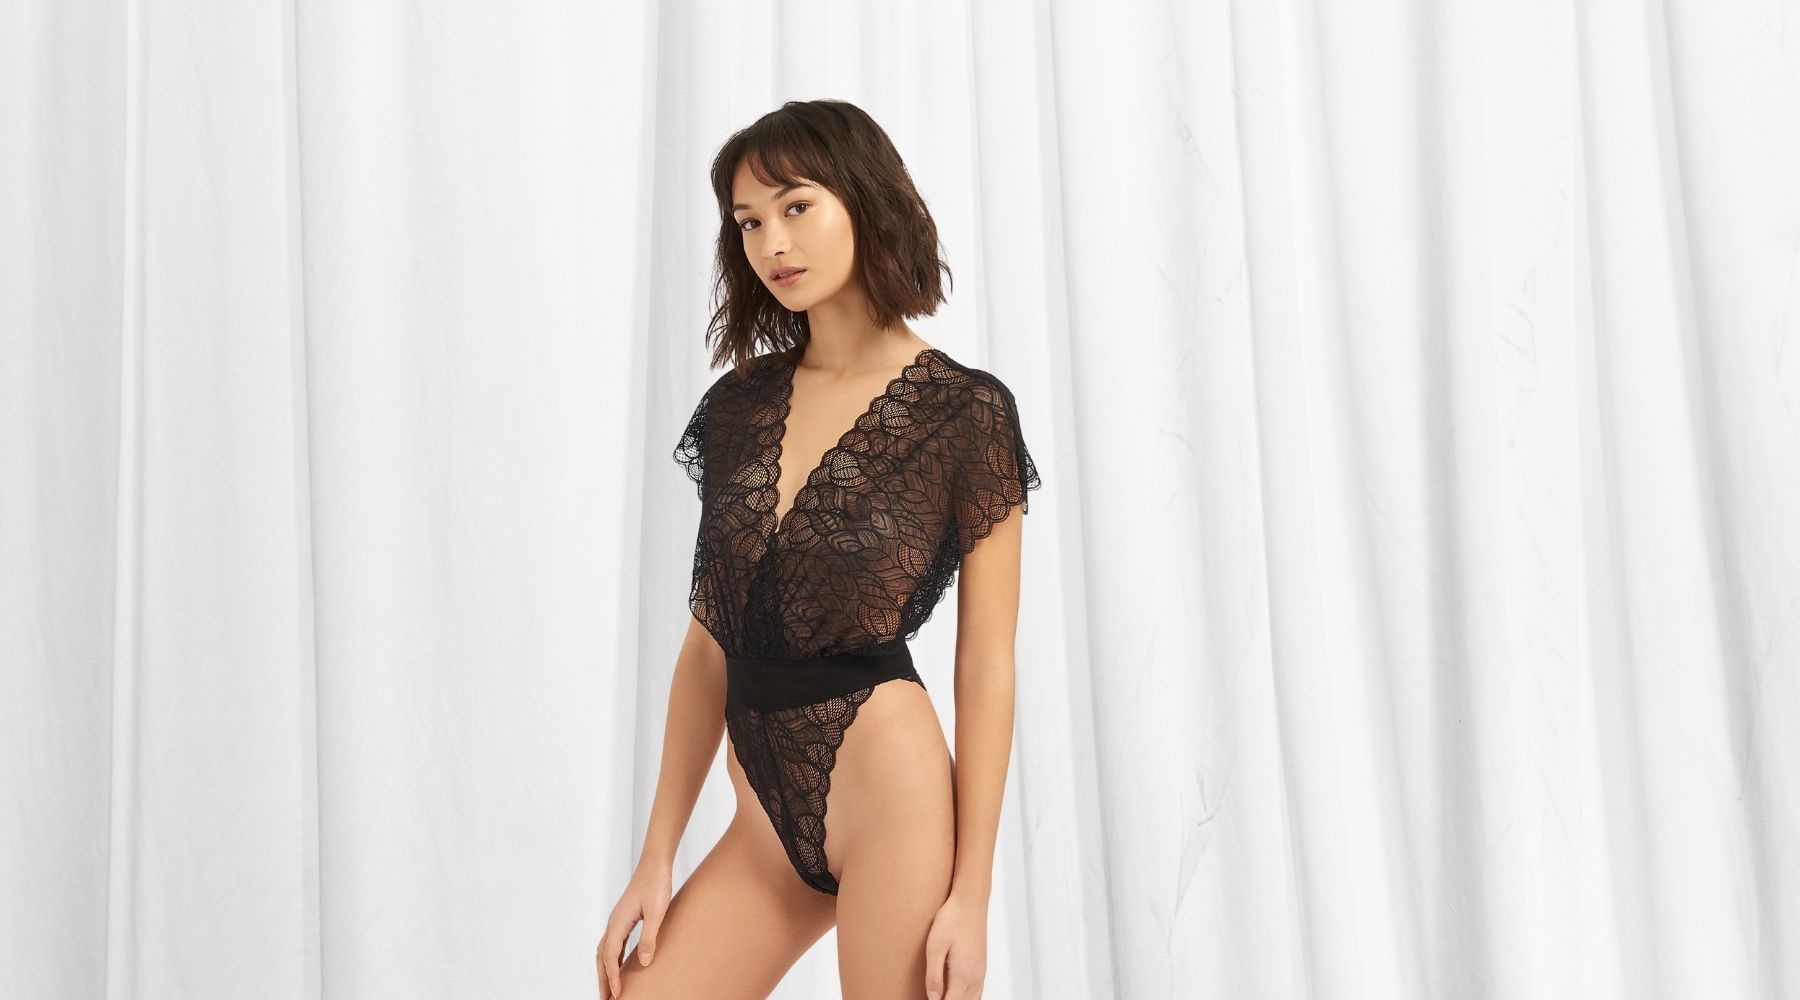 Bluebella Emerson Body | Avec Amour Sexy High End Lingerie